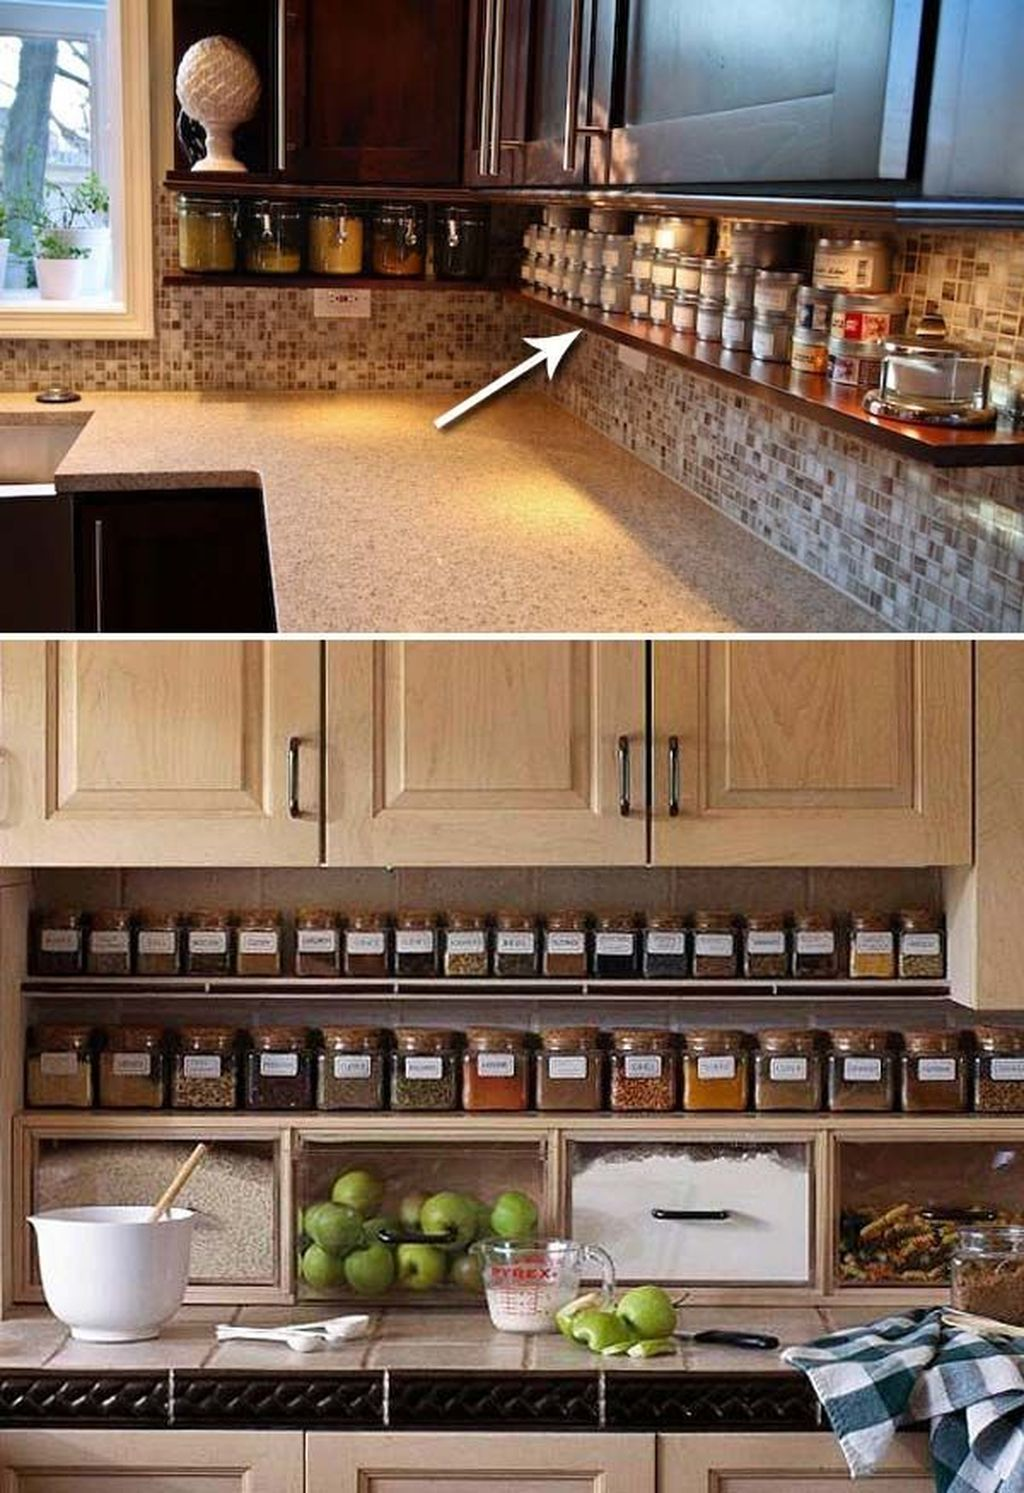 48 Easy Tiny House Kitchen Storage Ideas With Images Clutter Free Kitchen Countertops Kitchen Remodel Small Clutter Free Kitchen